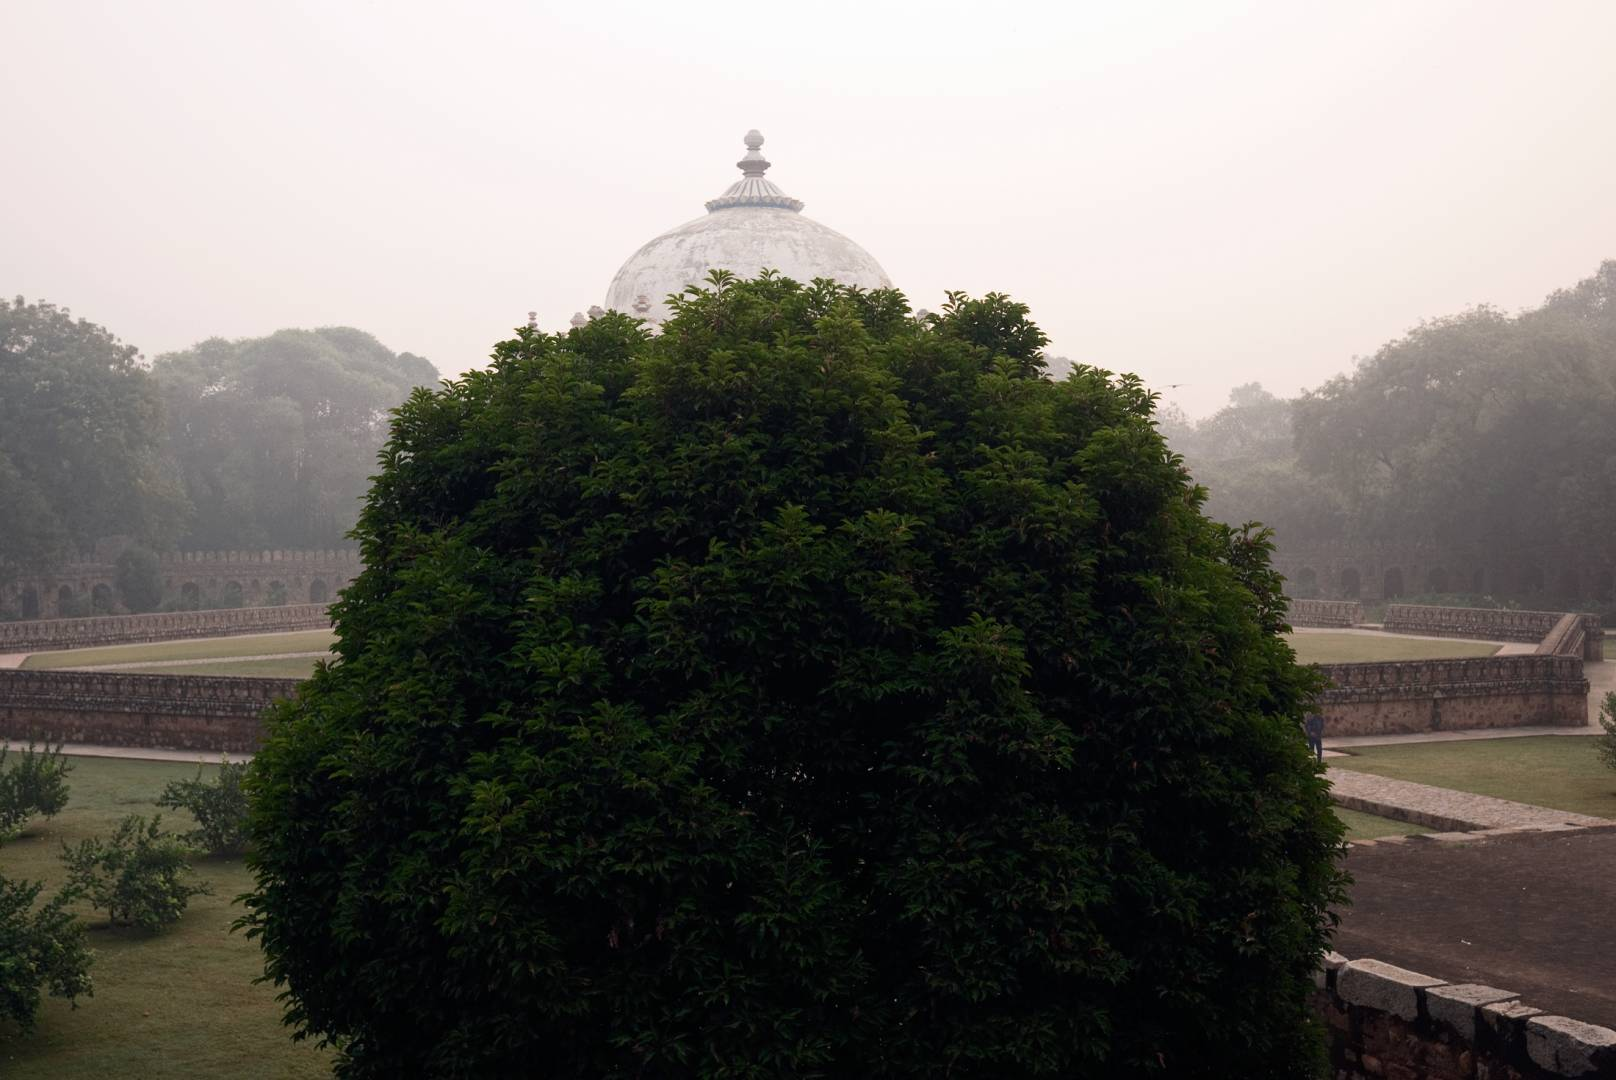 Isa Khan's Tomb, Nizamuddin, is one of many garden-tombs in the Humayun complex. One can get habituated very quickly to the tombs scattered about the city but in this case I like how the tree mimics the dome.